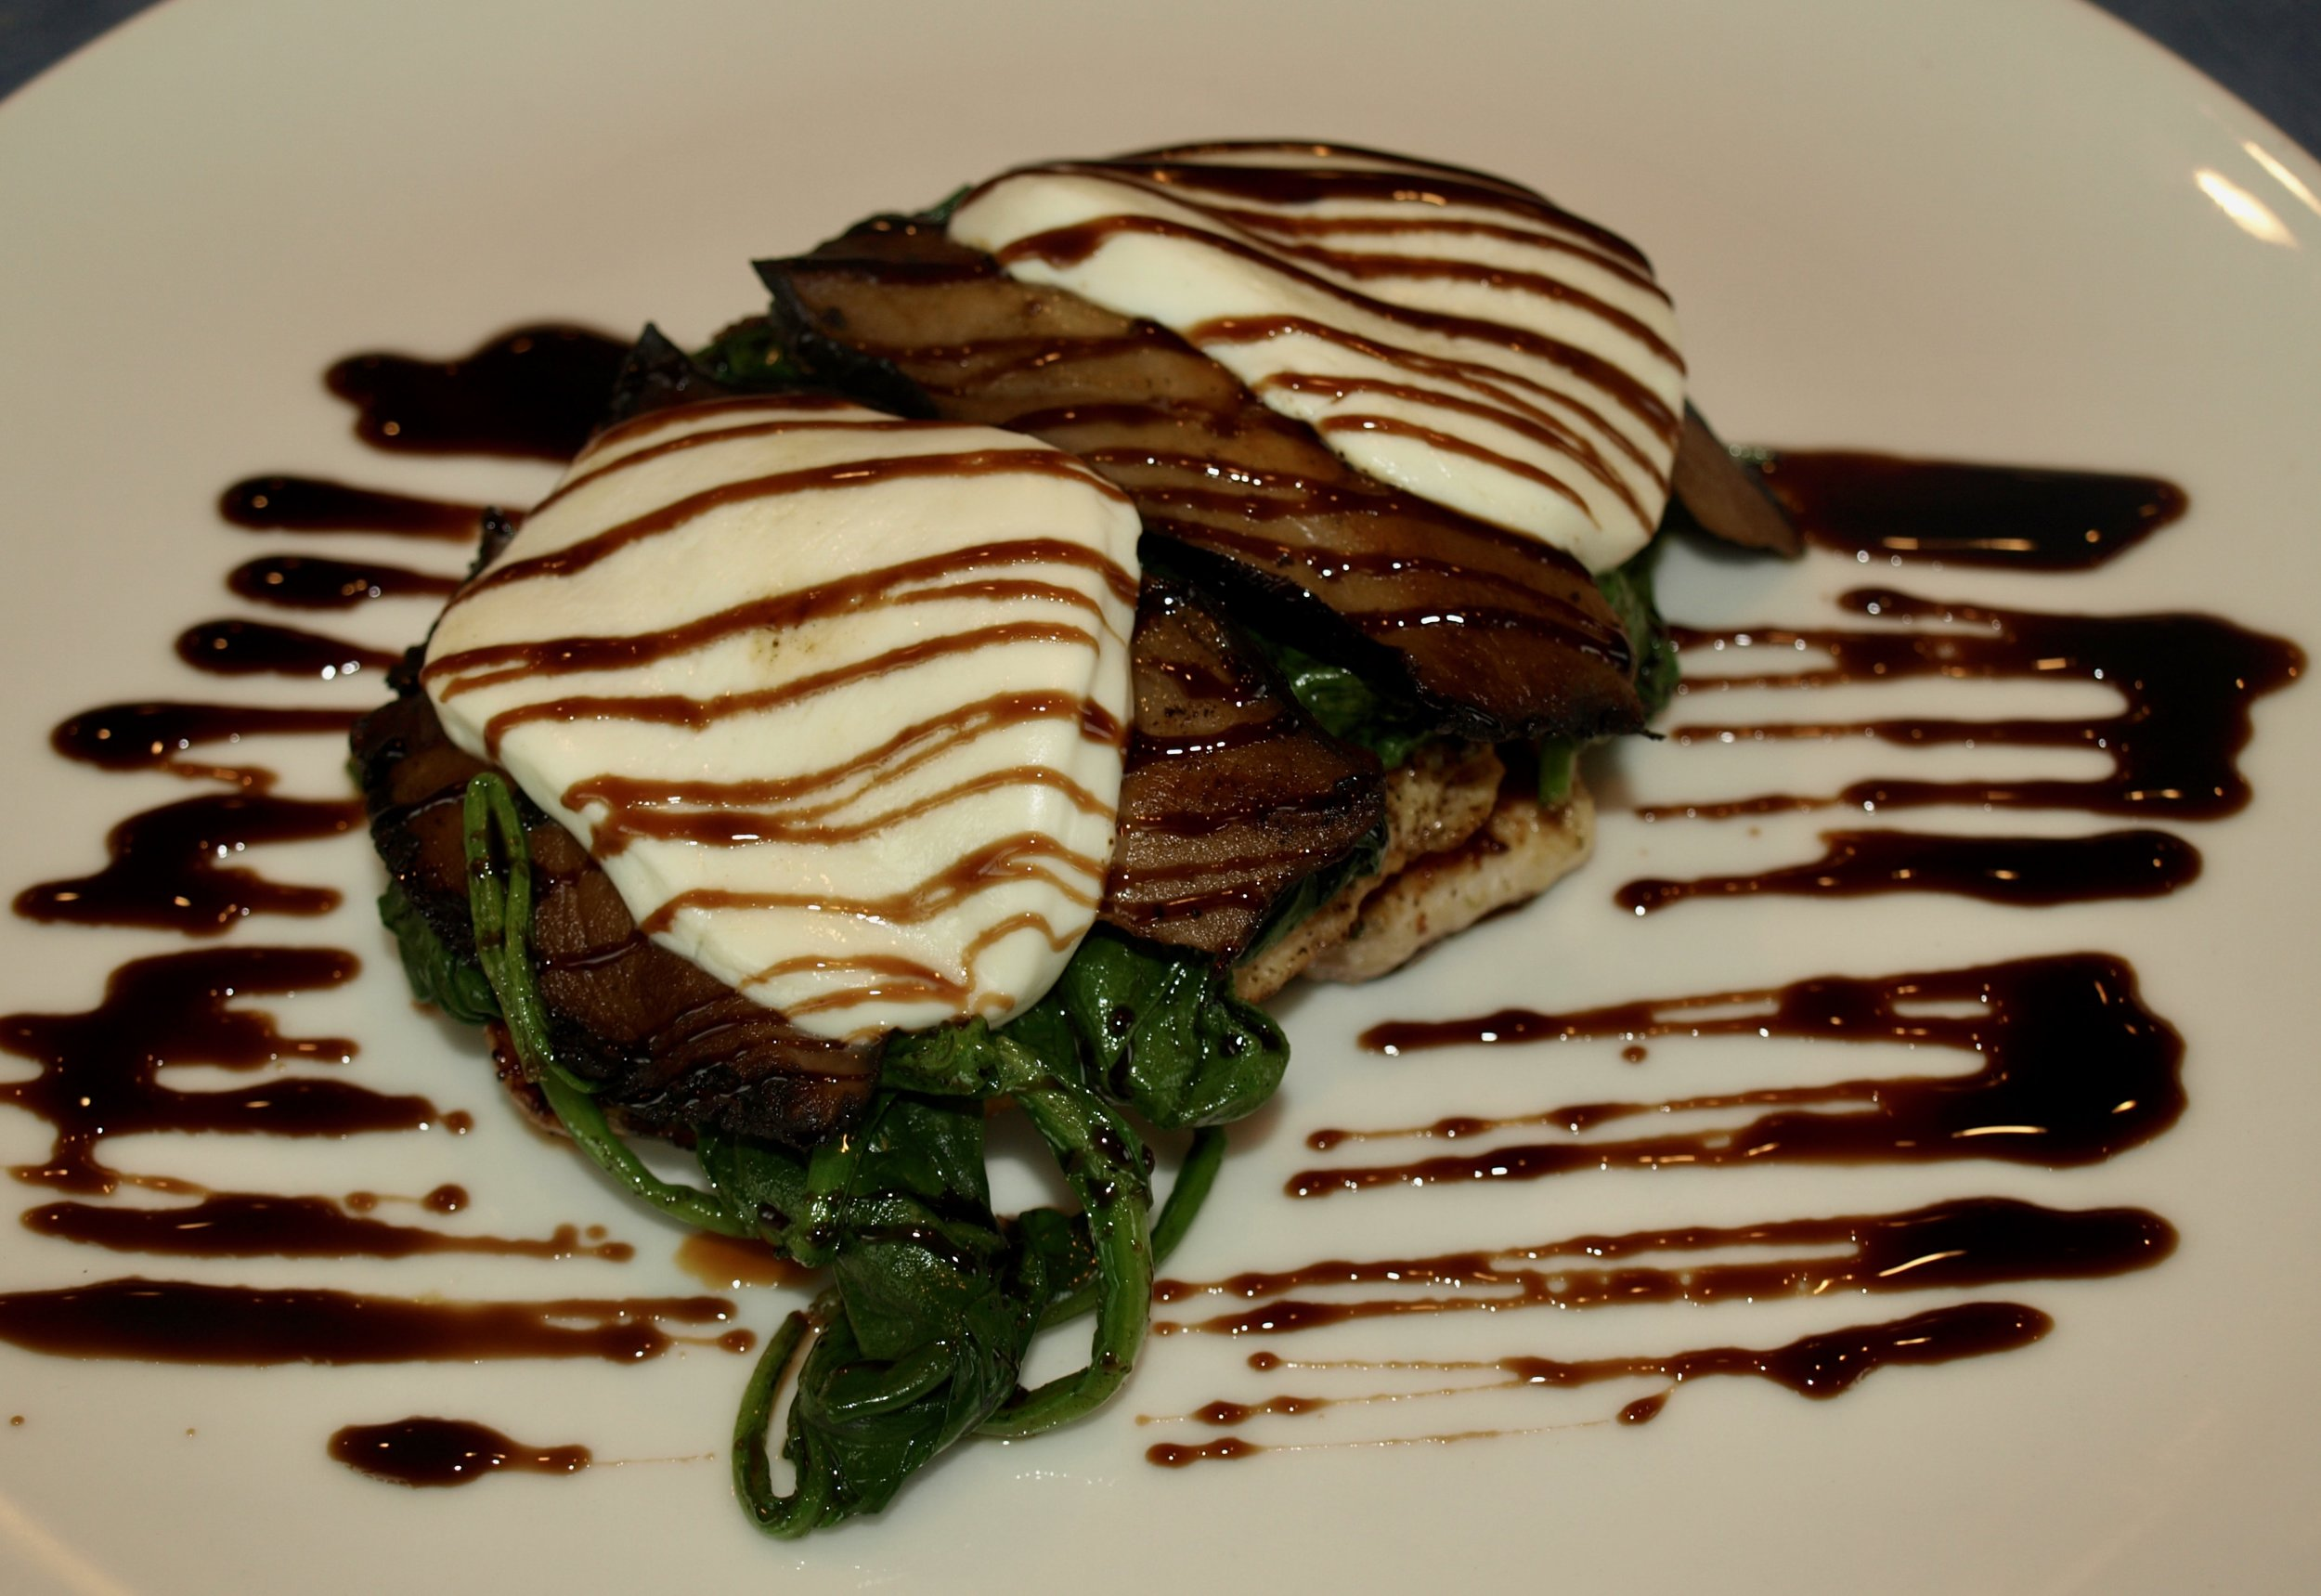 Grilled chicken balsamico topped with sauteed spinach, Portobello mushrooms and fresh mozzarella, drizzled with a balsamic reduction